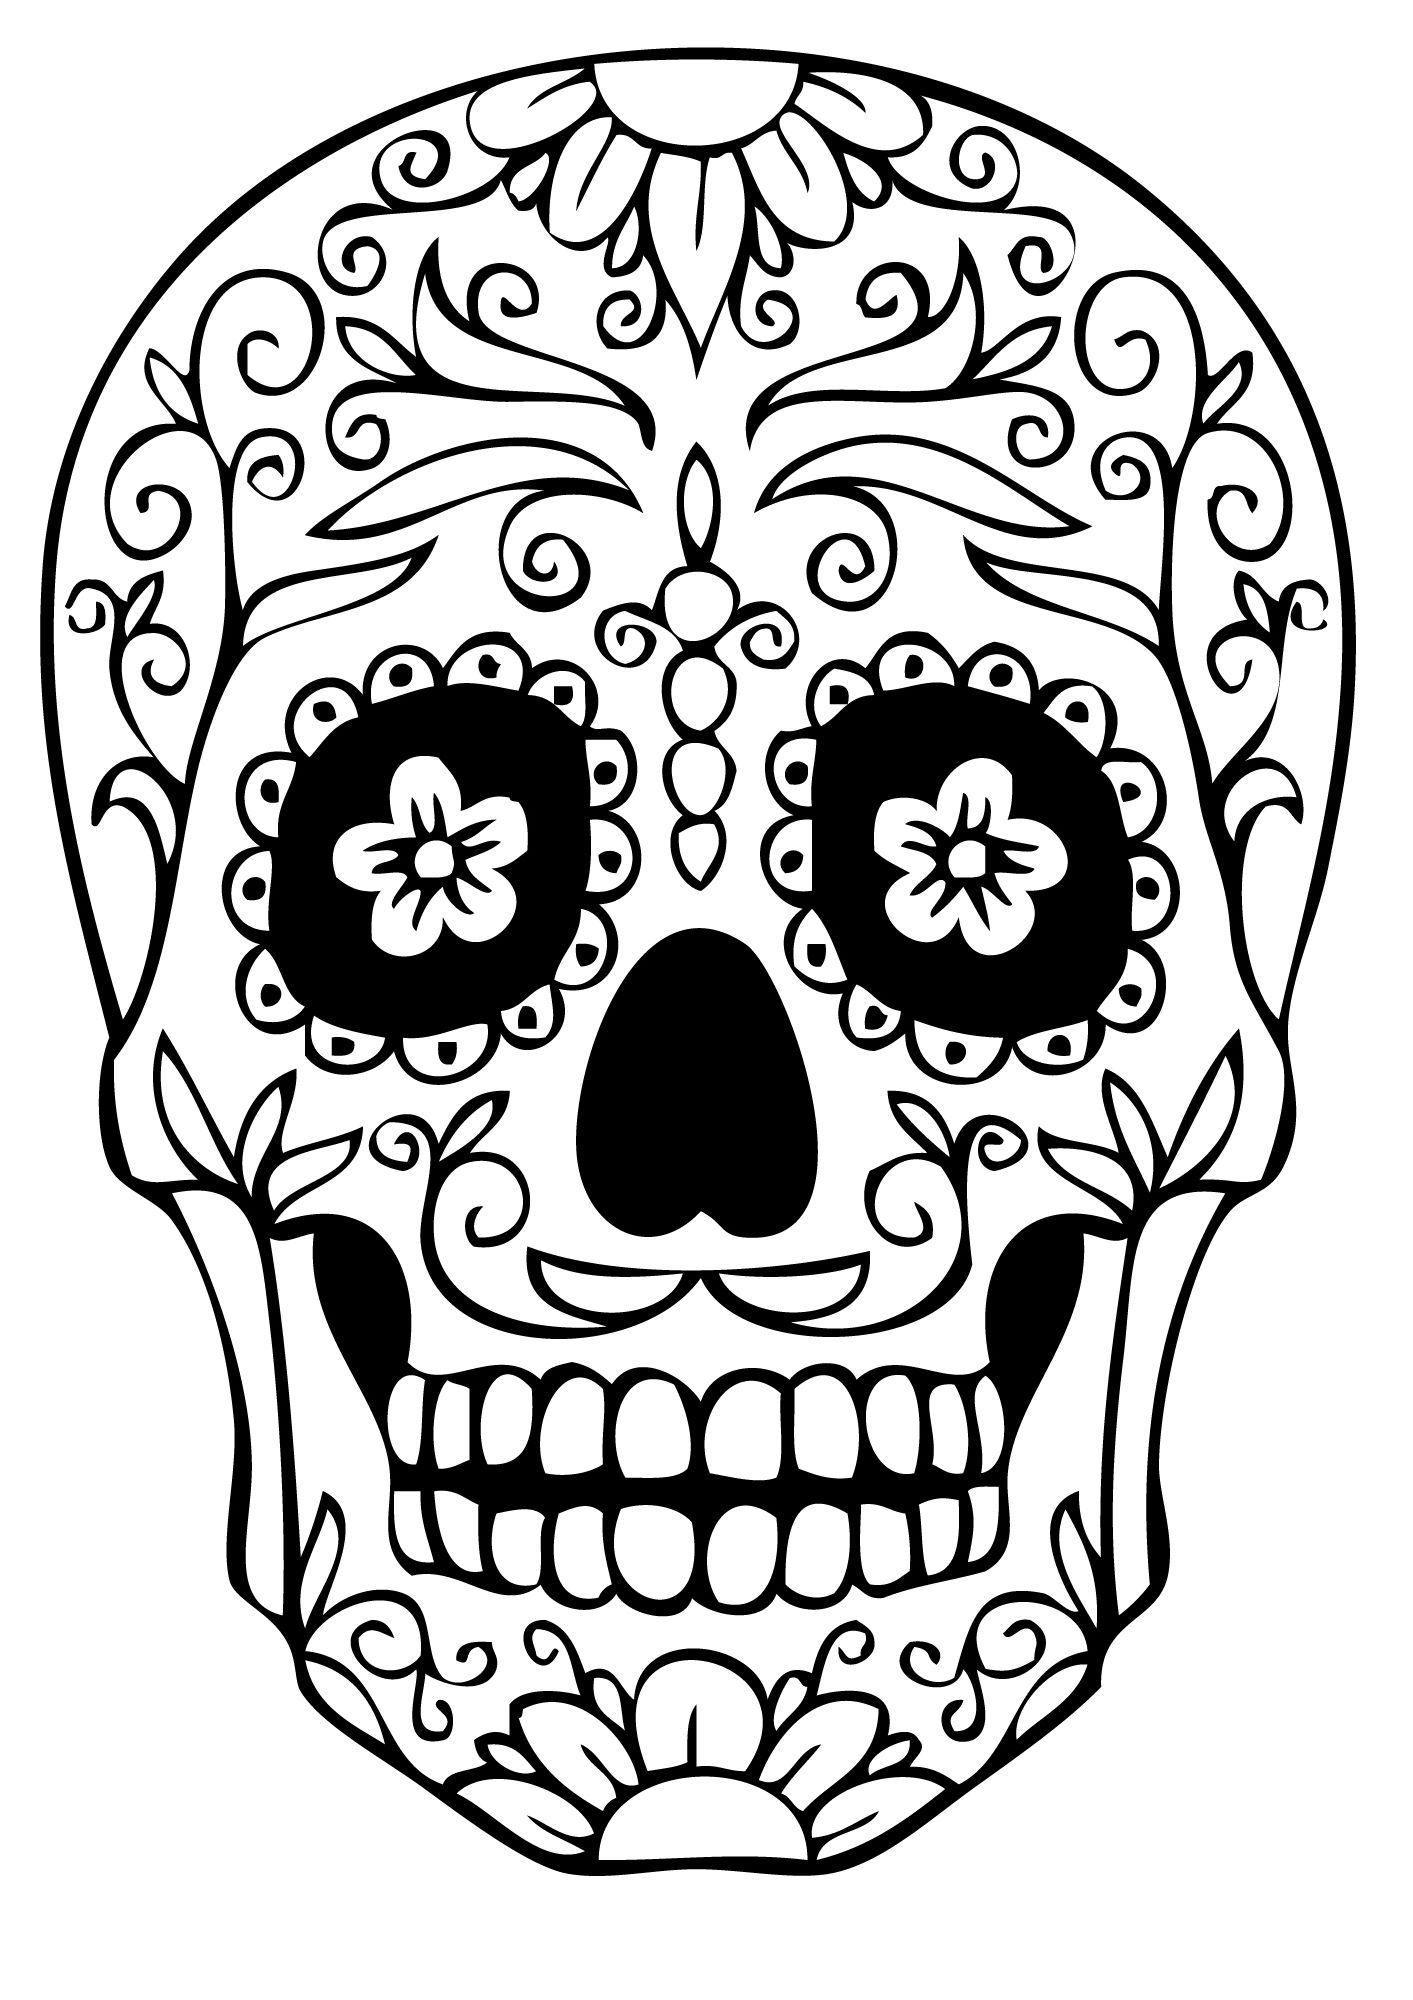 Skull Coloring Pages For Developing Knowledge In Human Physiology Skull Coloring Pages Sugar Skull Drawing Skull Template